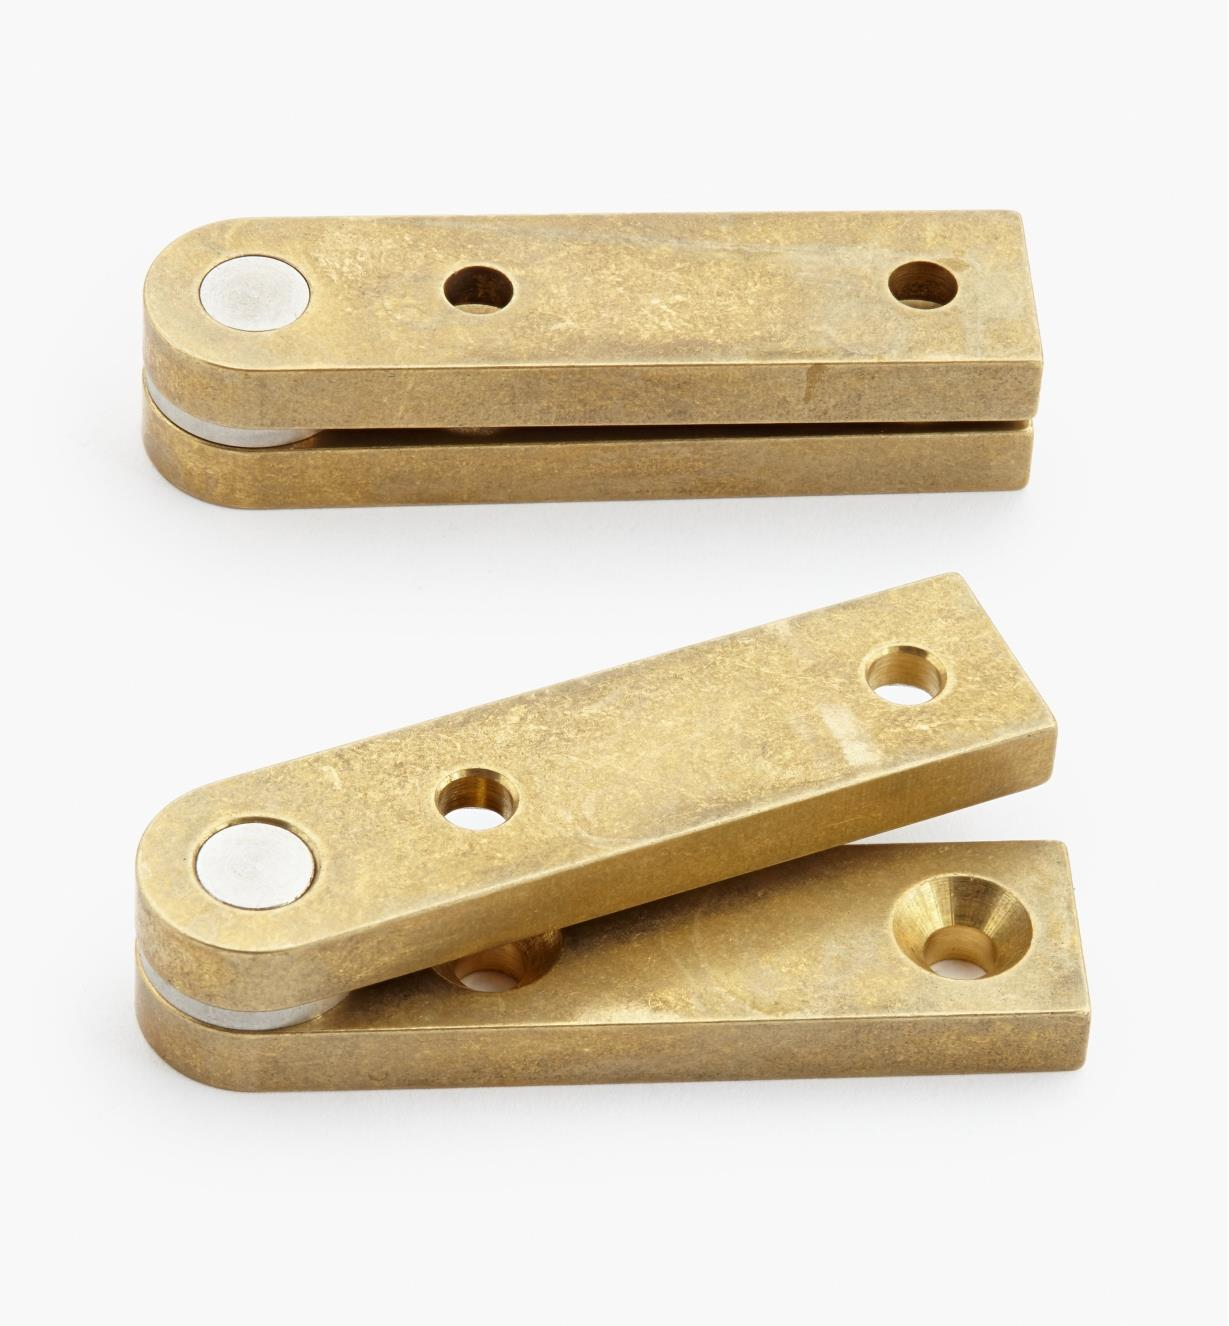 "05H0108 - 1/2"" x 2"" x 3/16"", Brass Straight Knife Hinges, pair"